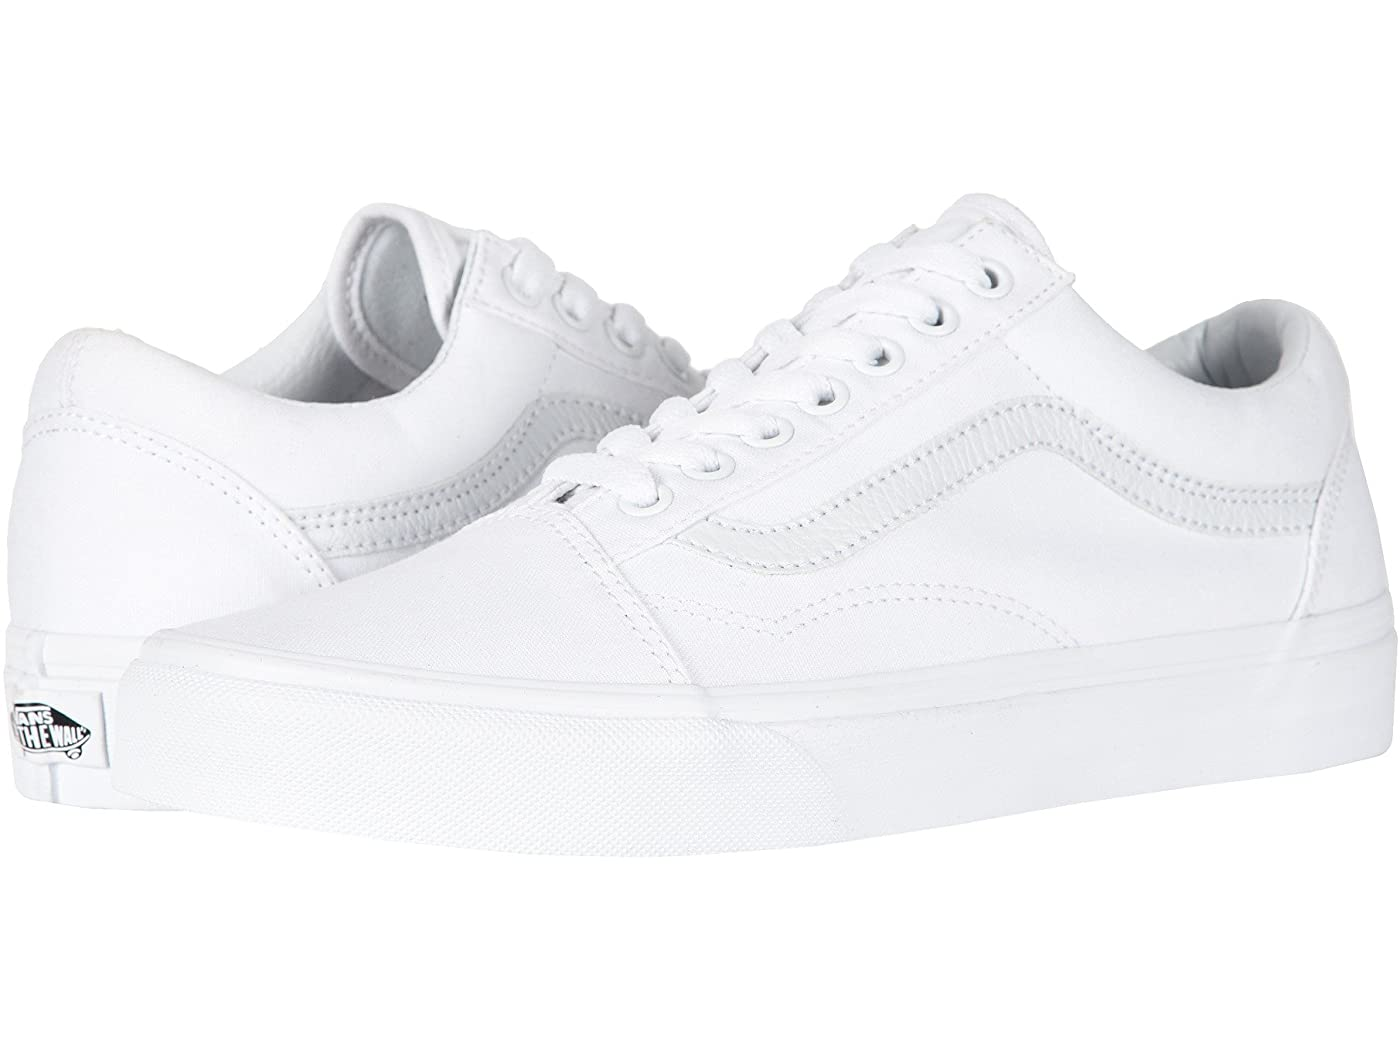 Old Skool™ Core Classics by Vans, available on zappos.com for $59.95 Emily Ratajkowski Shoes Exact Product